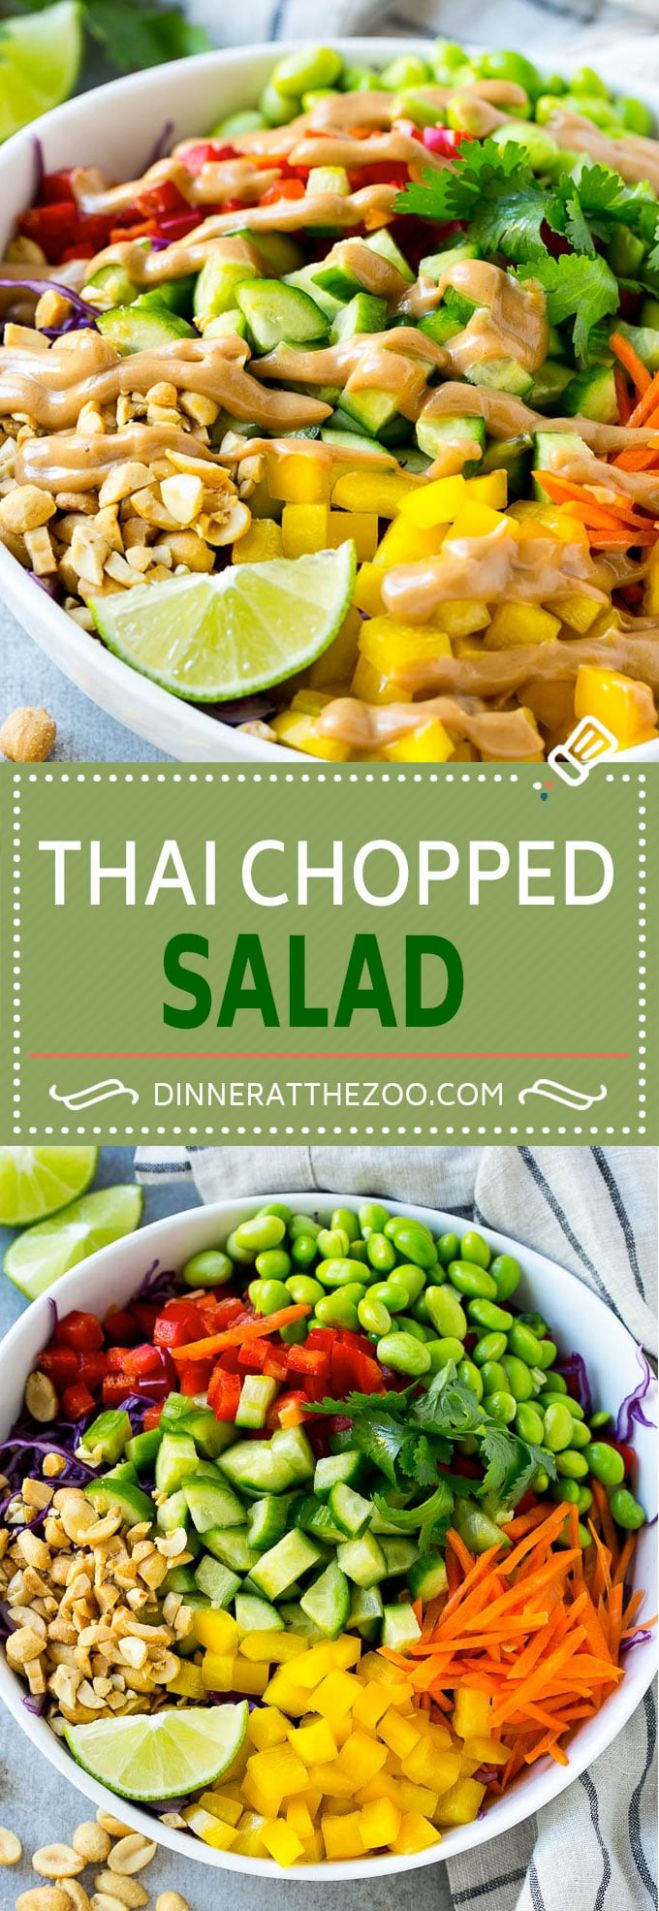 12 Healthy Salad Recipes - Dinner at the Zoo - Salad Recipes Dinner